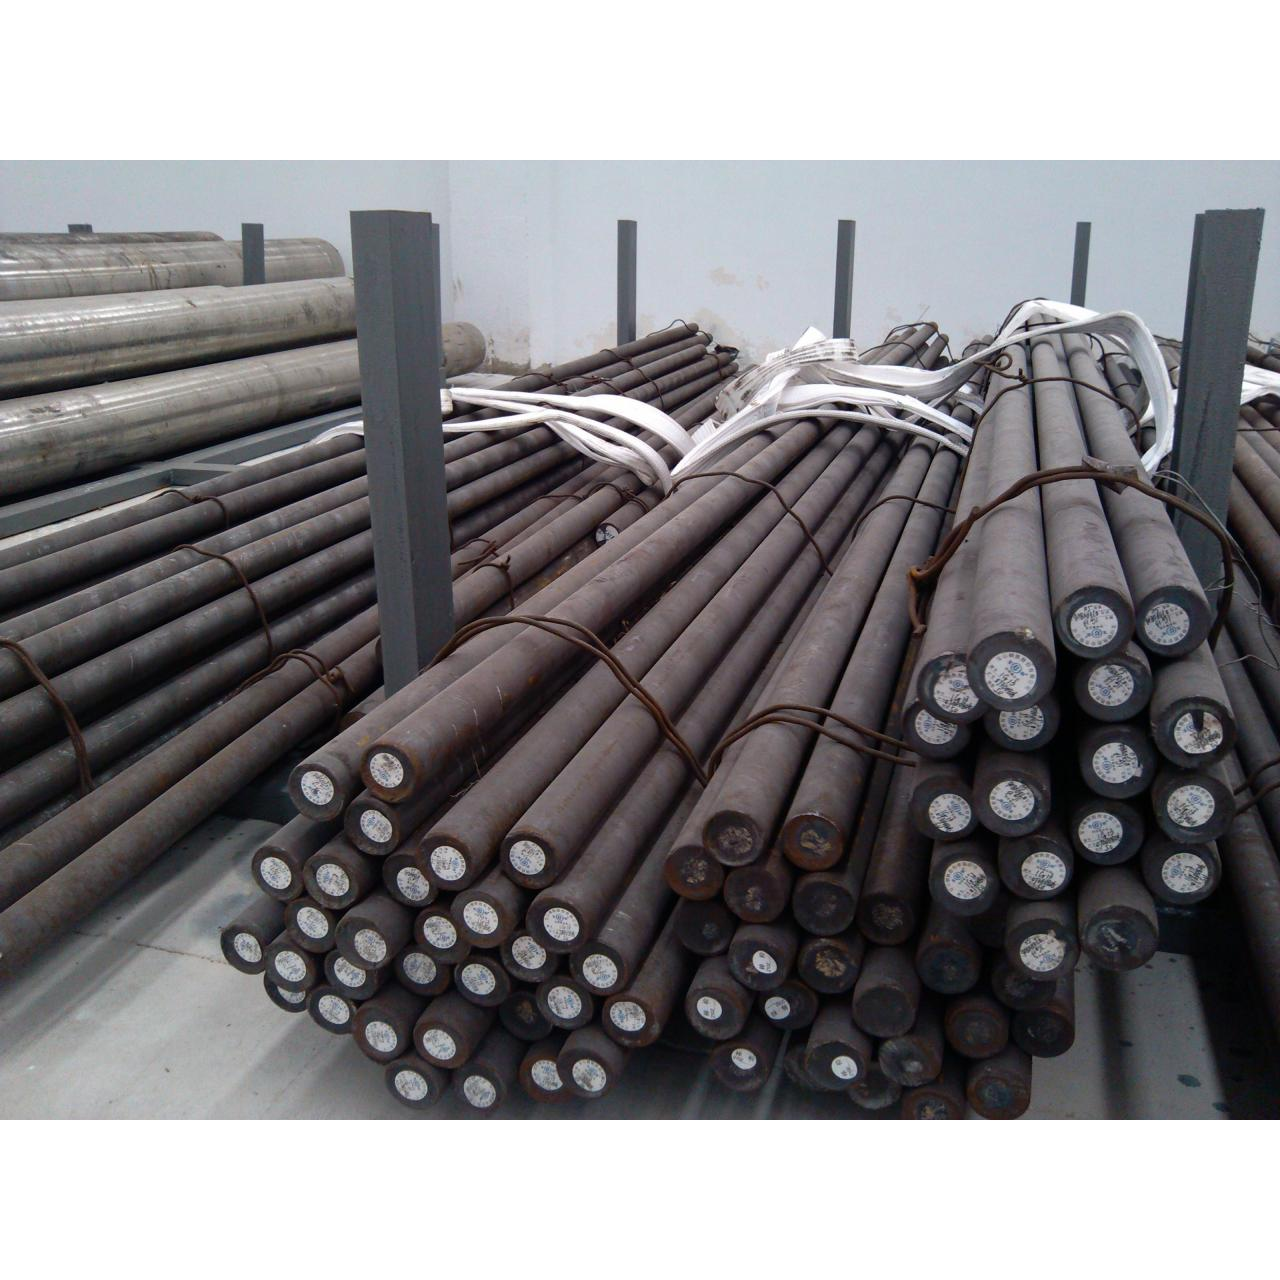 1CR13 410 martensitic stainless steels